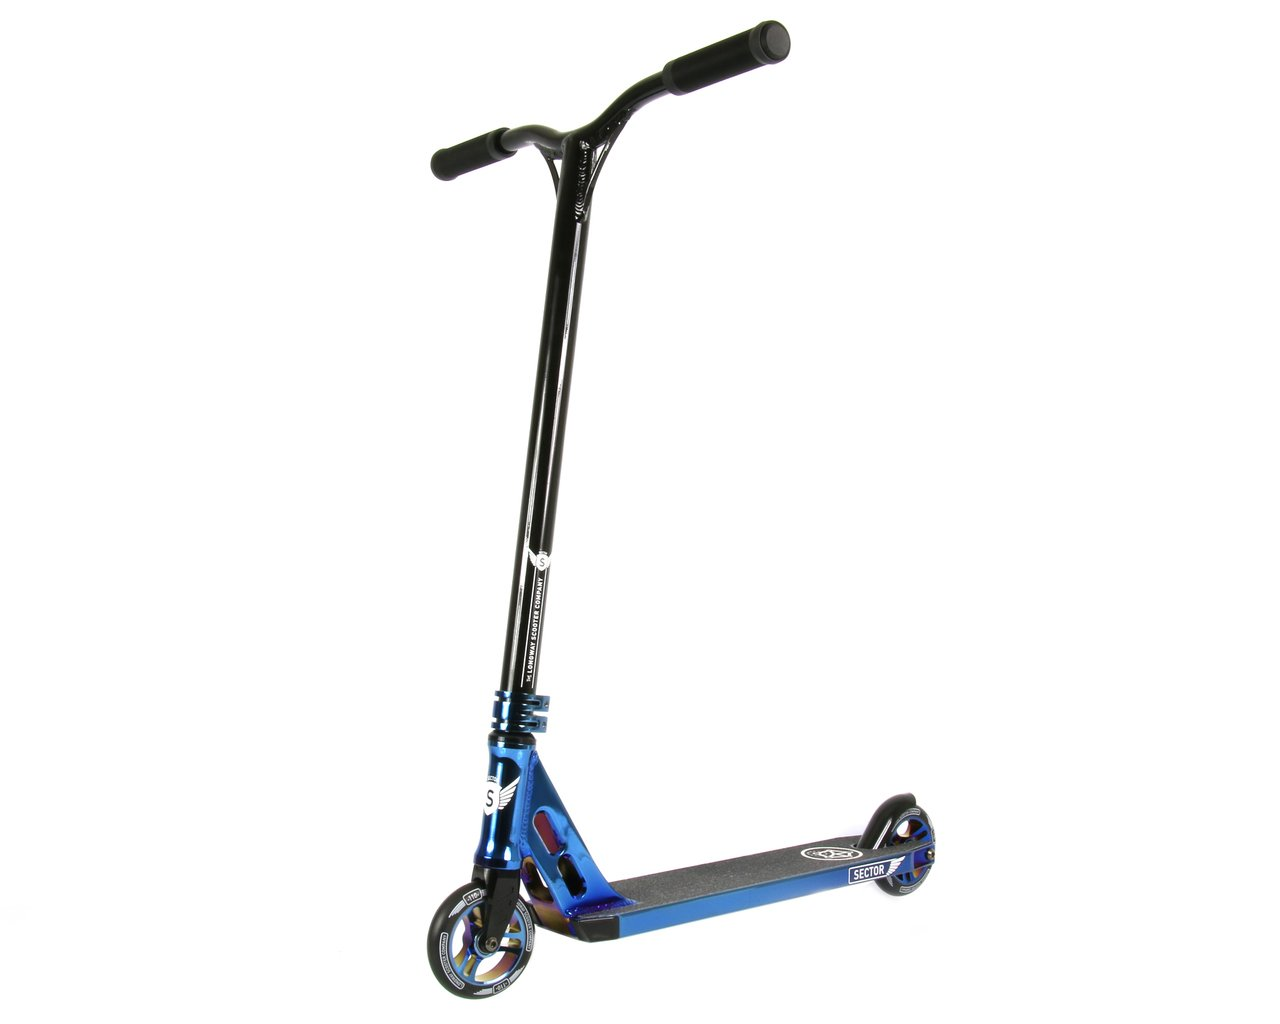 Sector Trick Stunt Complete Scooter - Perfect Kick Push Scooter for Intermediate/Advanced - Premium Colors - Quality Freestyle Setup for Affordable Price - Durable, Light, Easy Setup (Blue Neo Chrome)